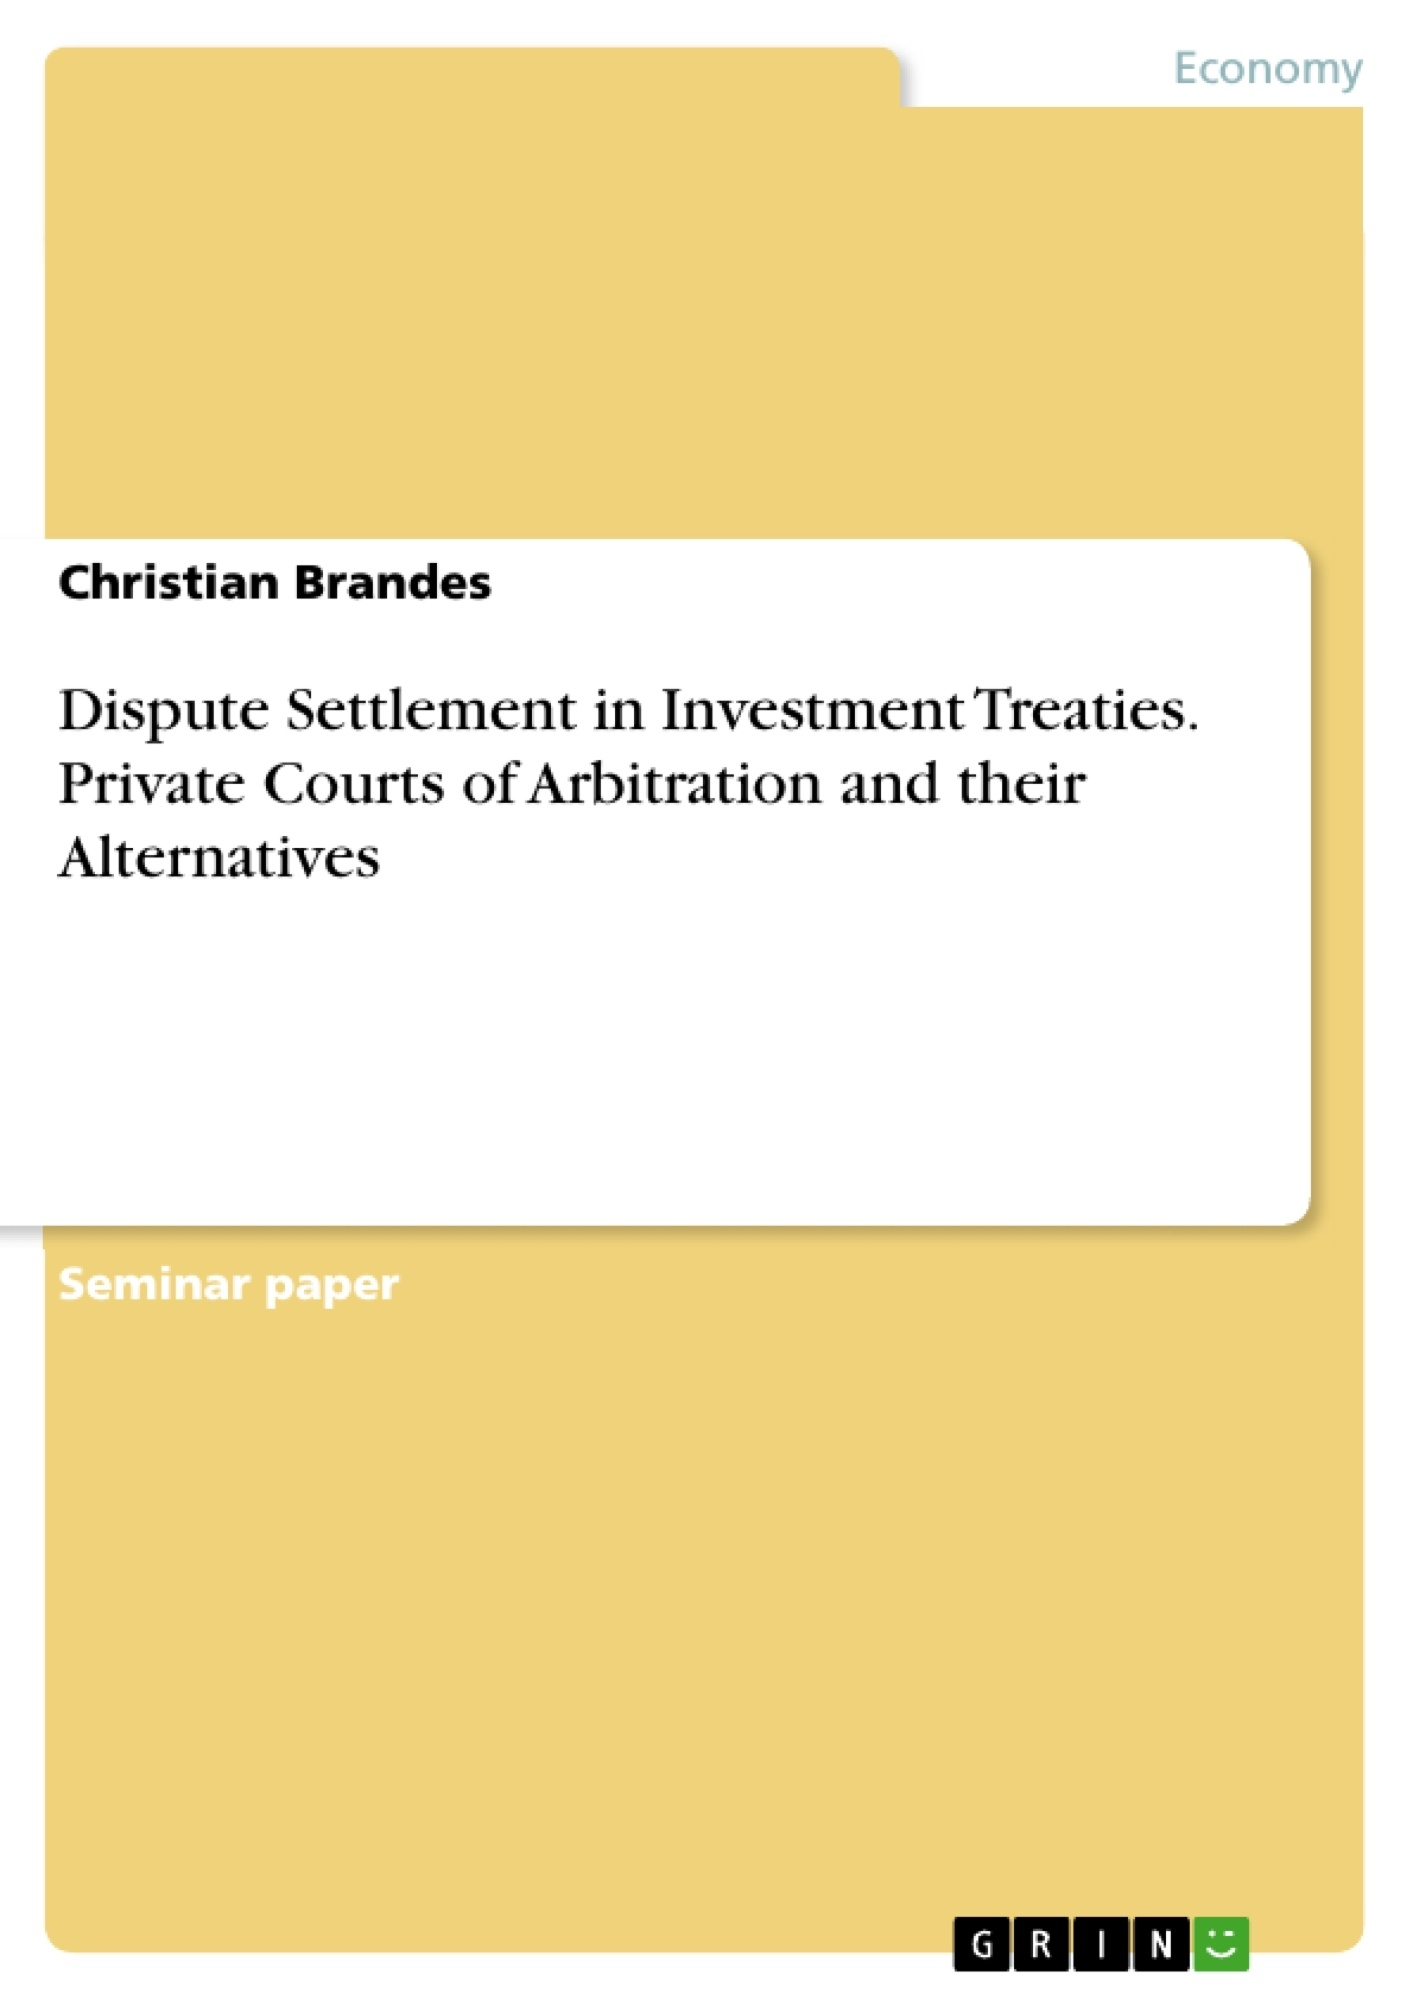 Title: Dispute Settlement in Investment Treaties. Private Courts of Arbitration and their Alternatives